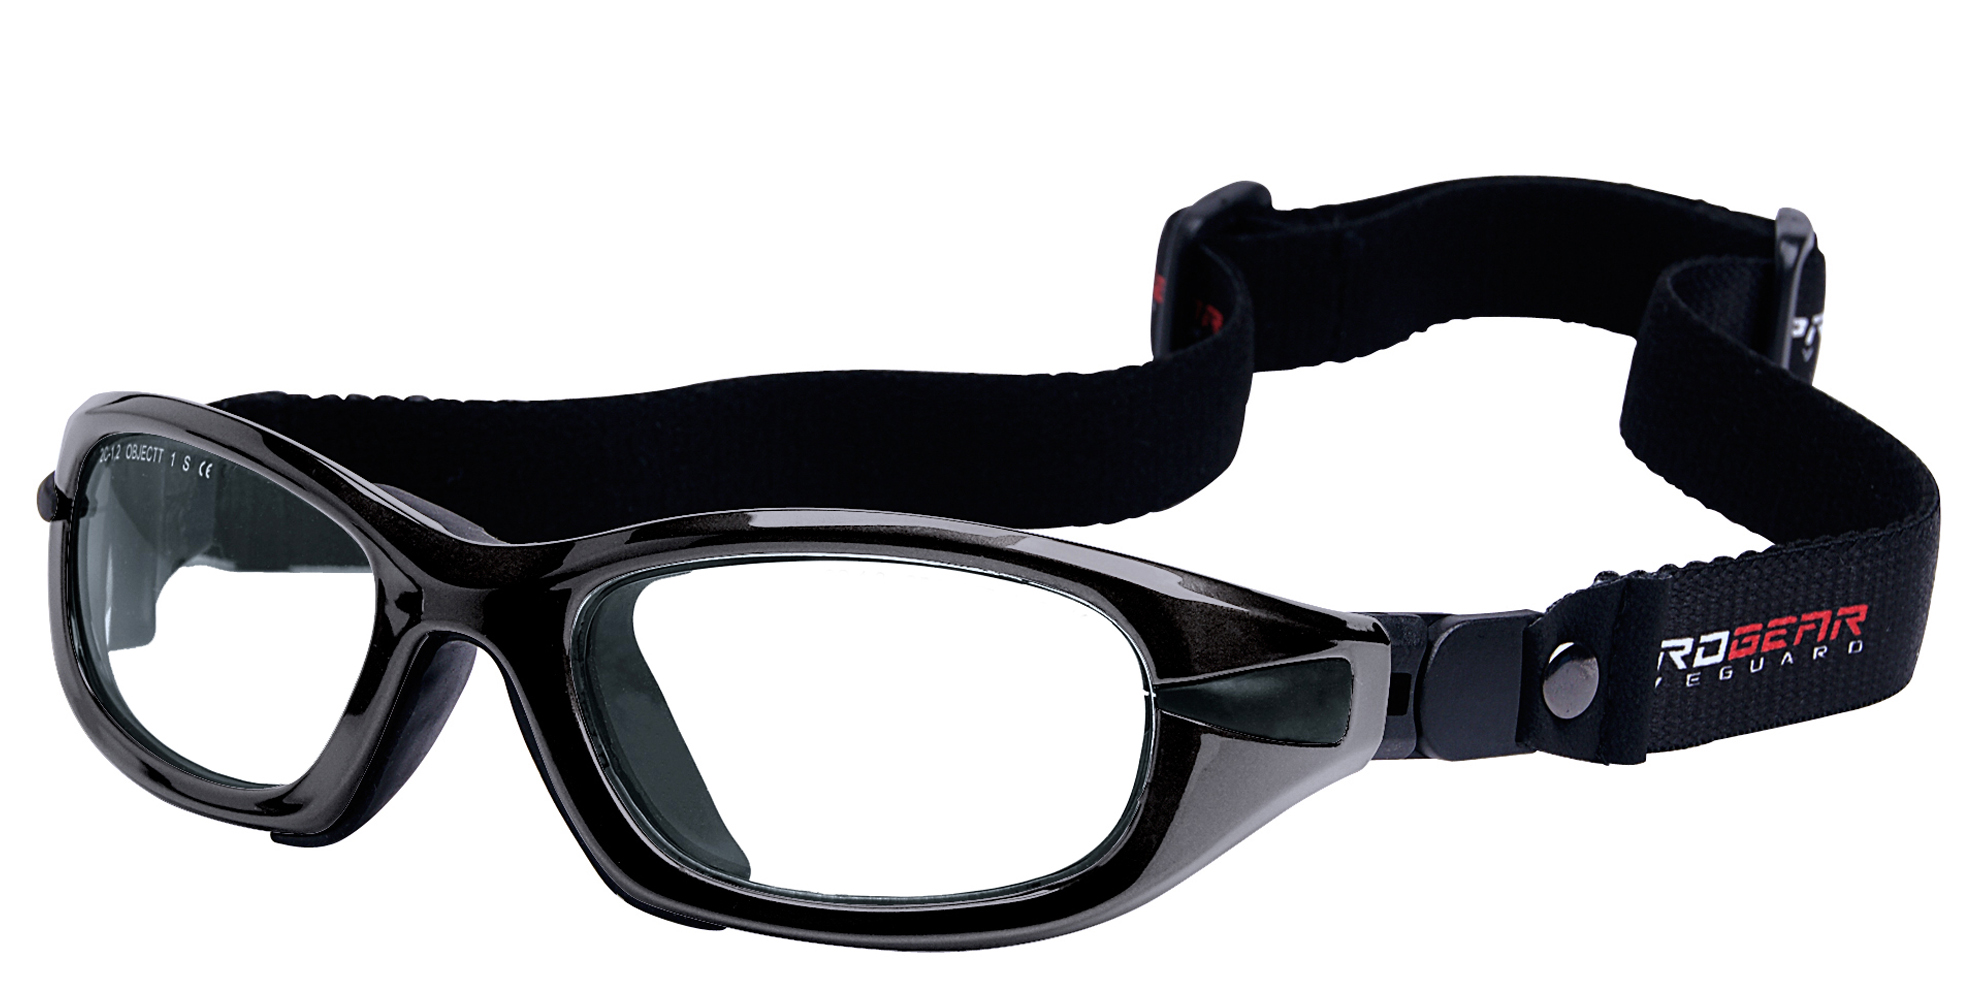 Shiny Metallic Black Strap version Eyeguard